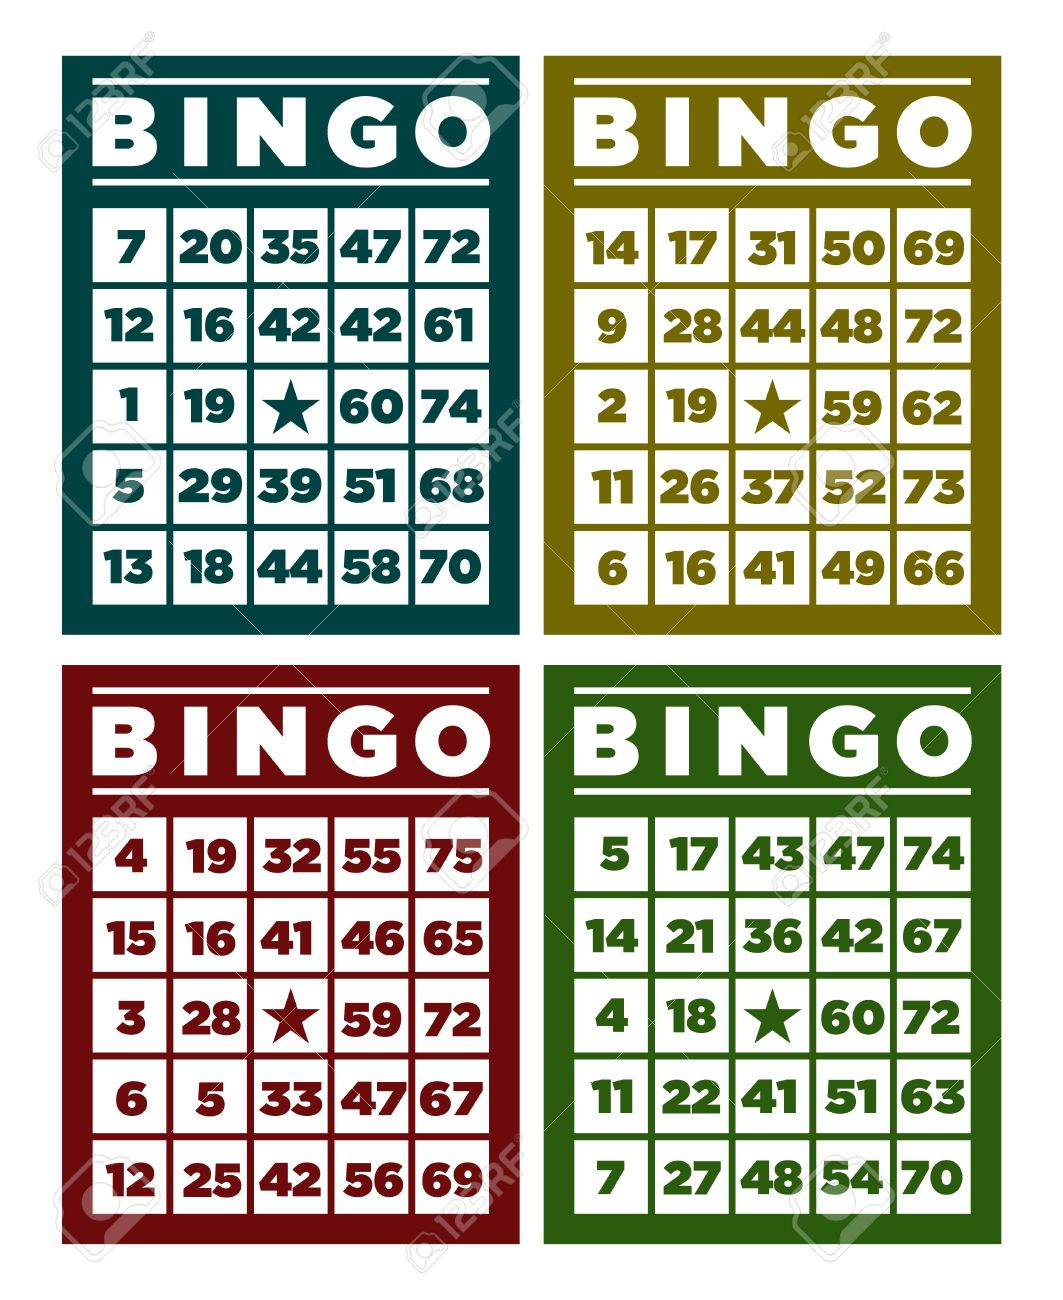 Étonnant Set Of Retro Bingo Cards Royalty Free Cliparts, Vectors, And Stock FH-35